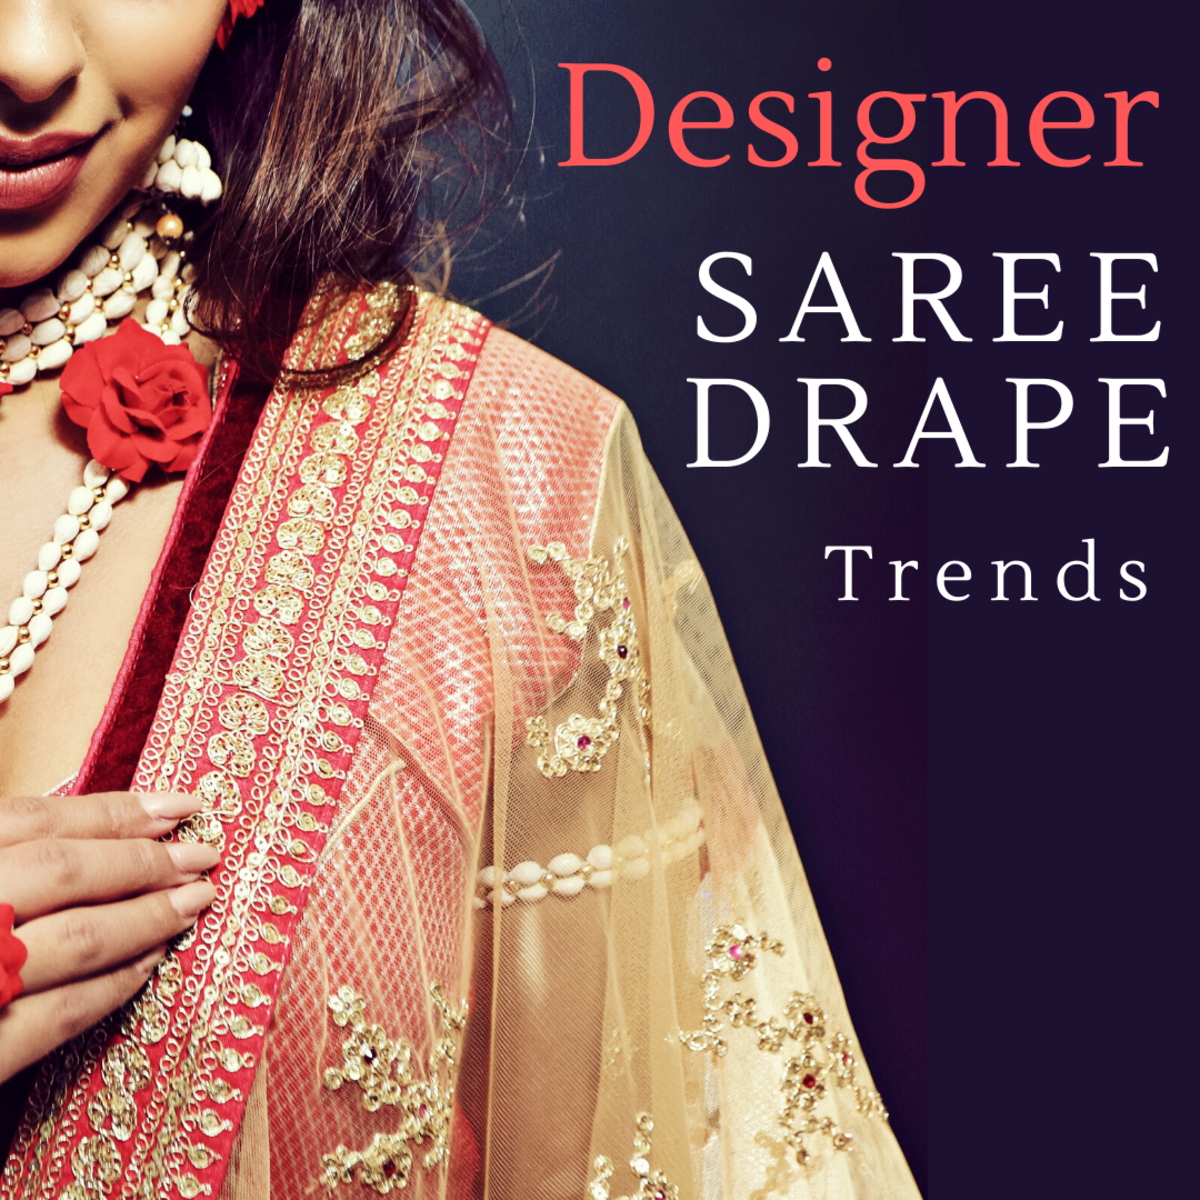 Designer Saree Drapes